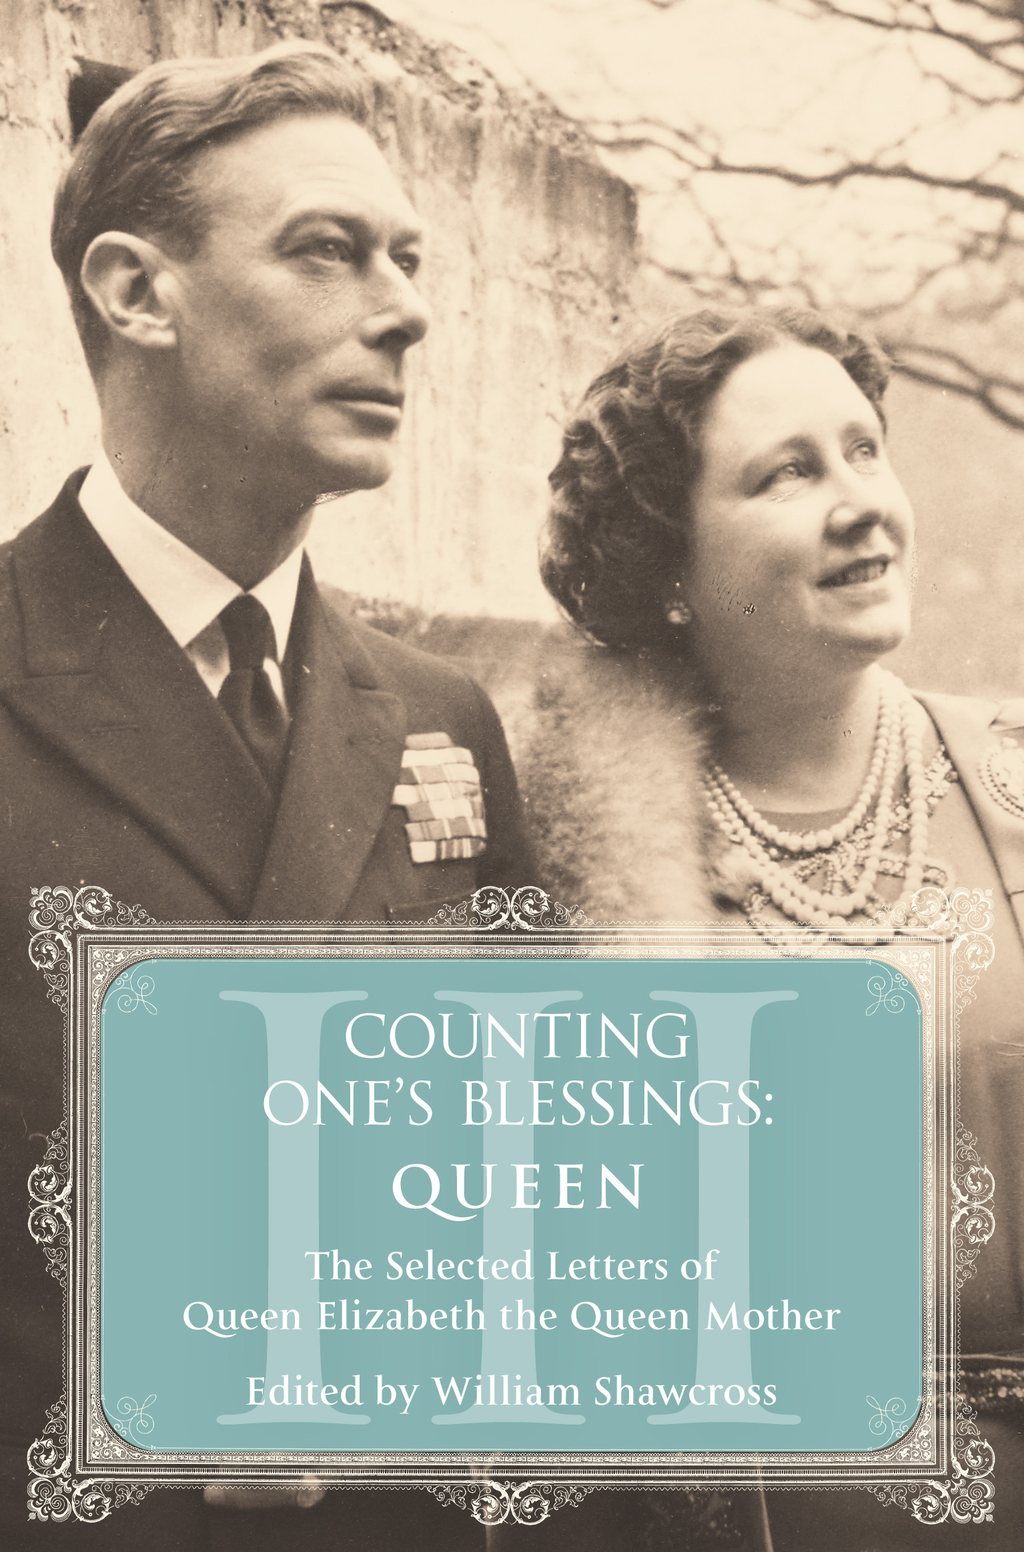 Queen The Selected Letters of Queen Elizabeth the Queen Mother: Part 3